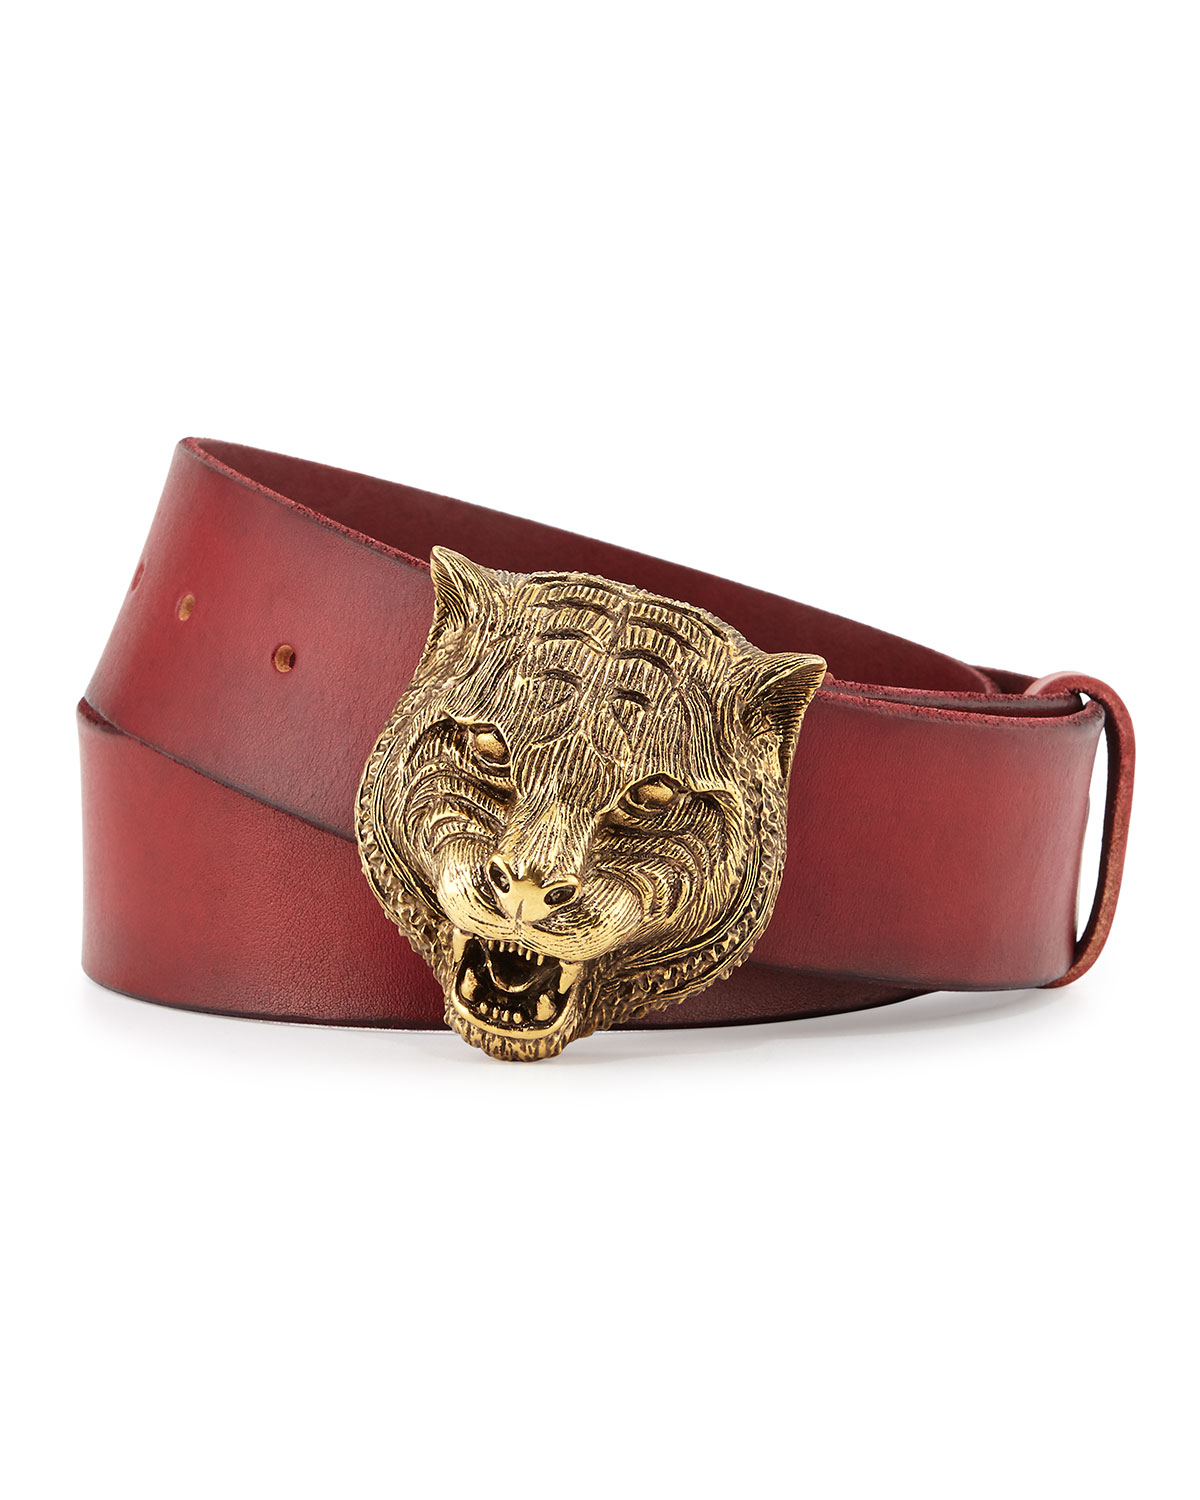 Gucci Men's Leather Belt with Tiger Buckle | Neiman Marcus